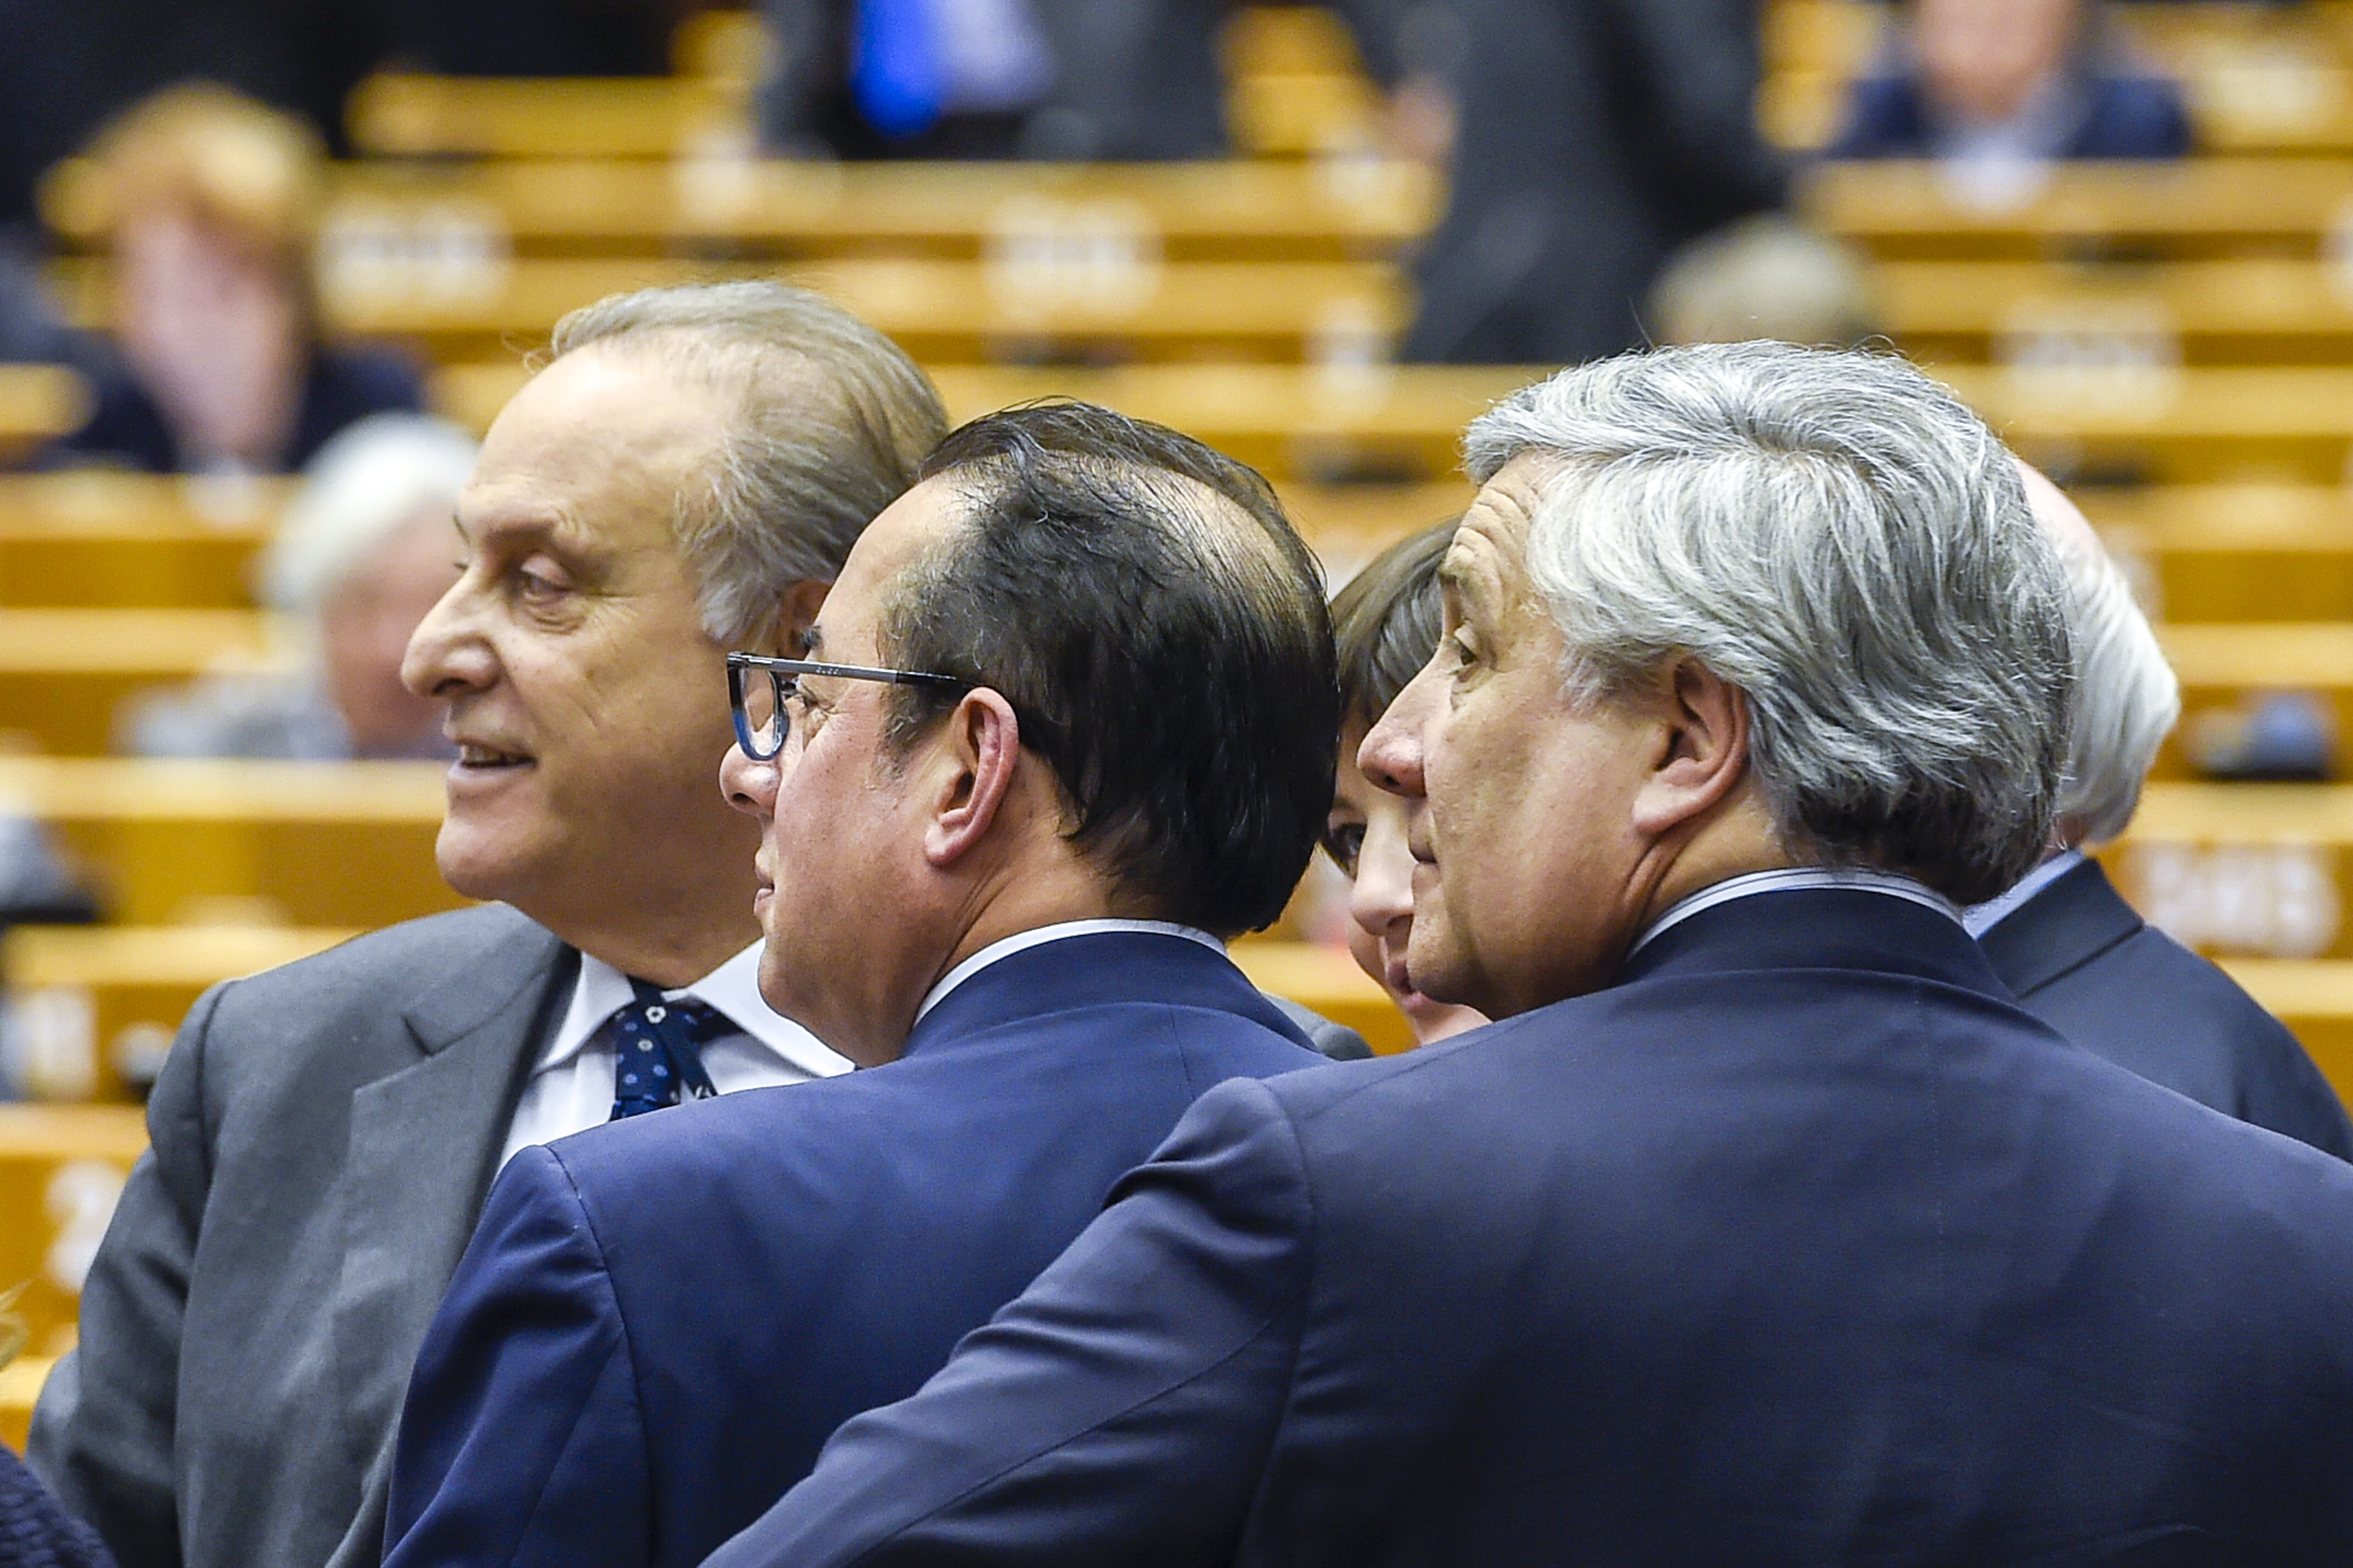 EP leadership contenders Tajani and Pittella: how they stand on trade